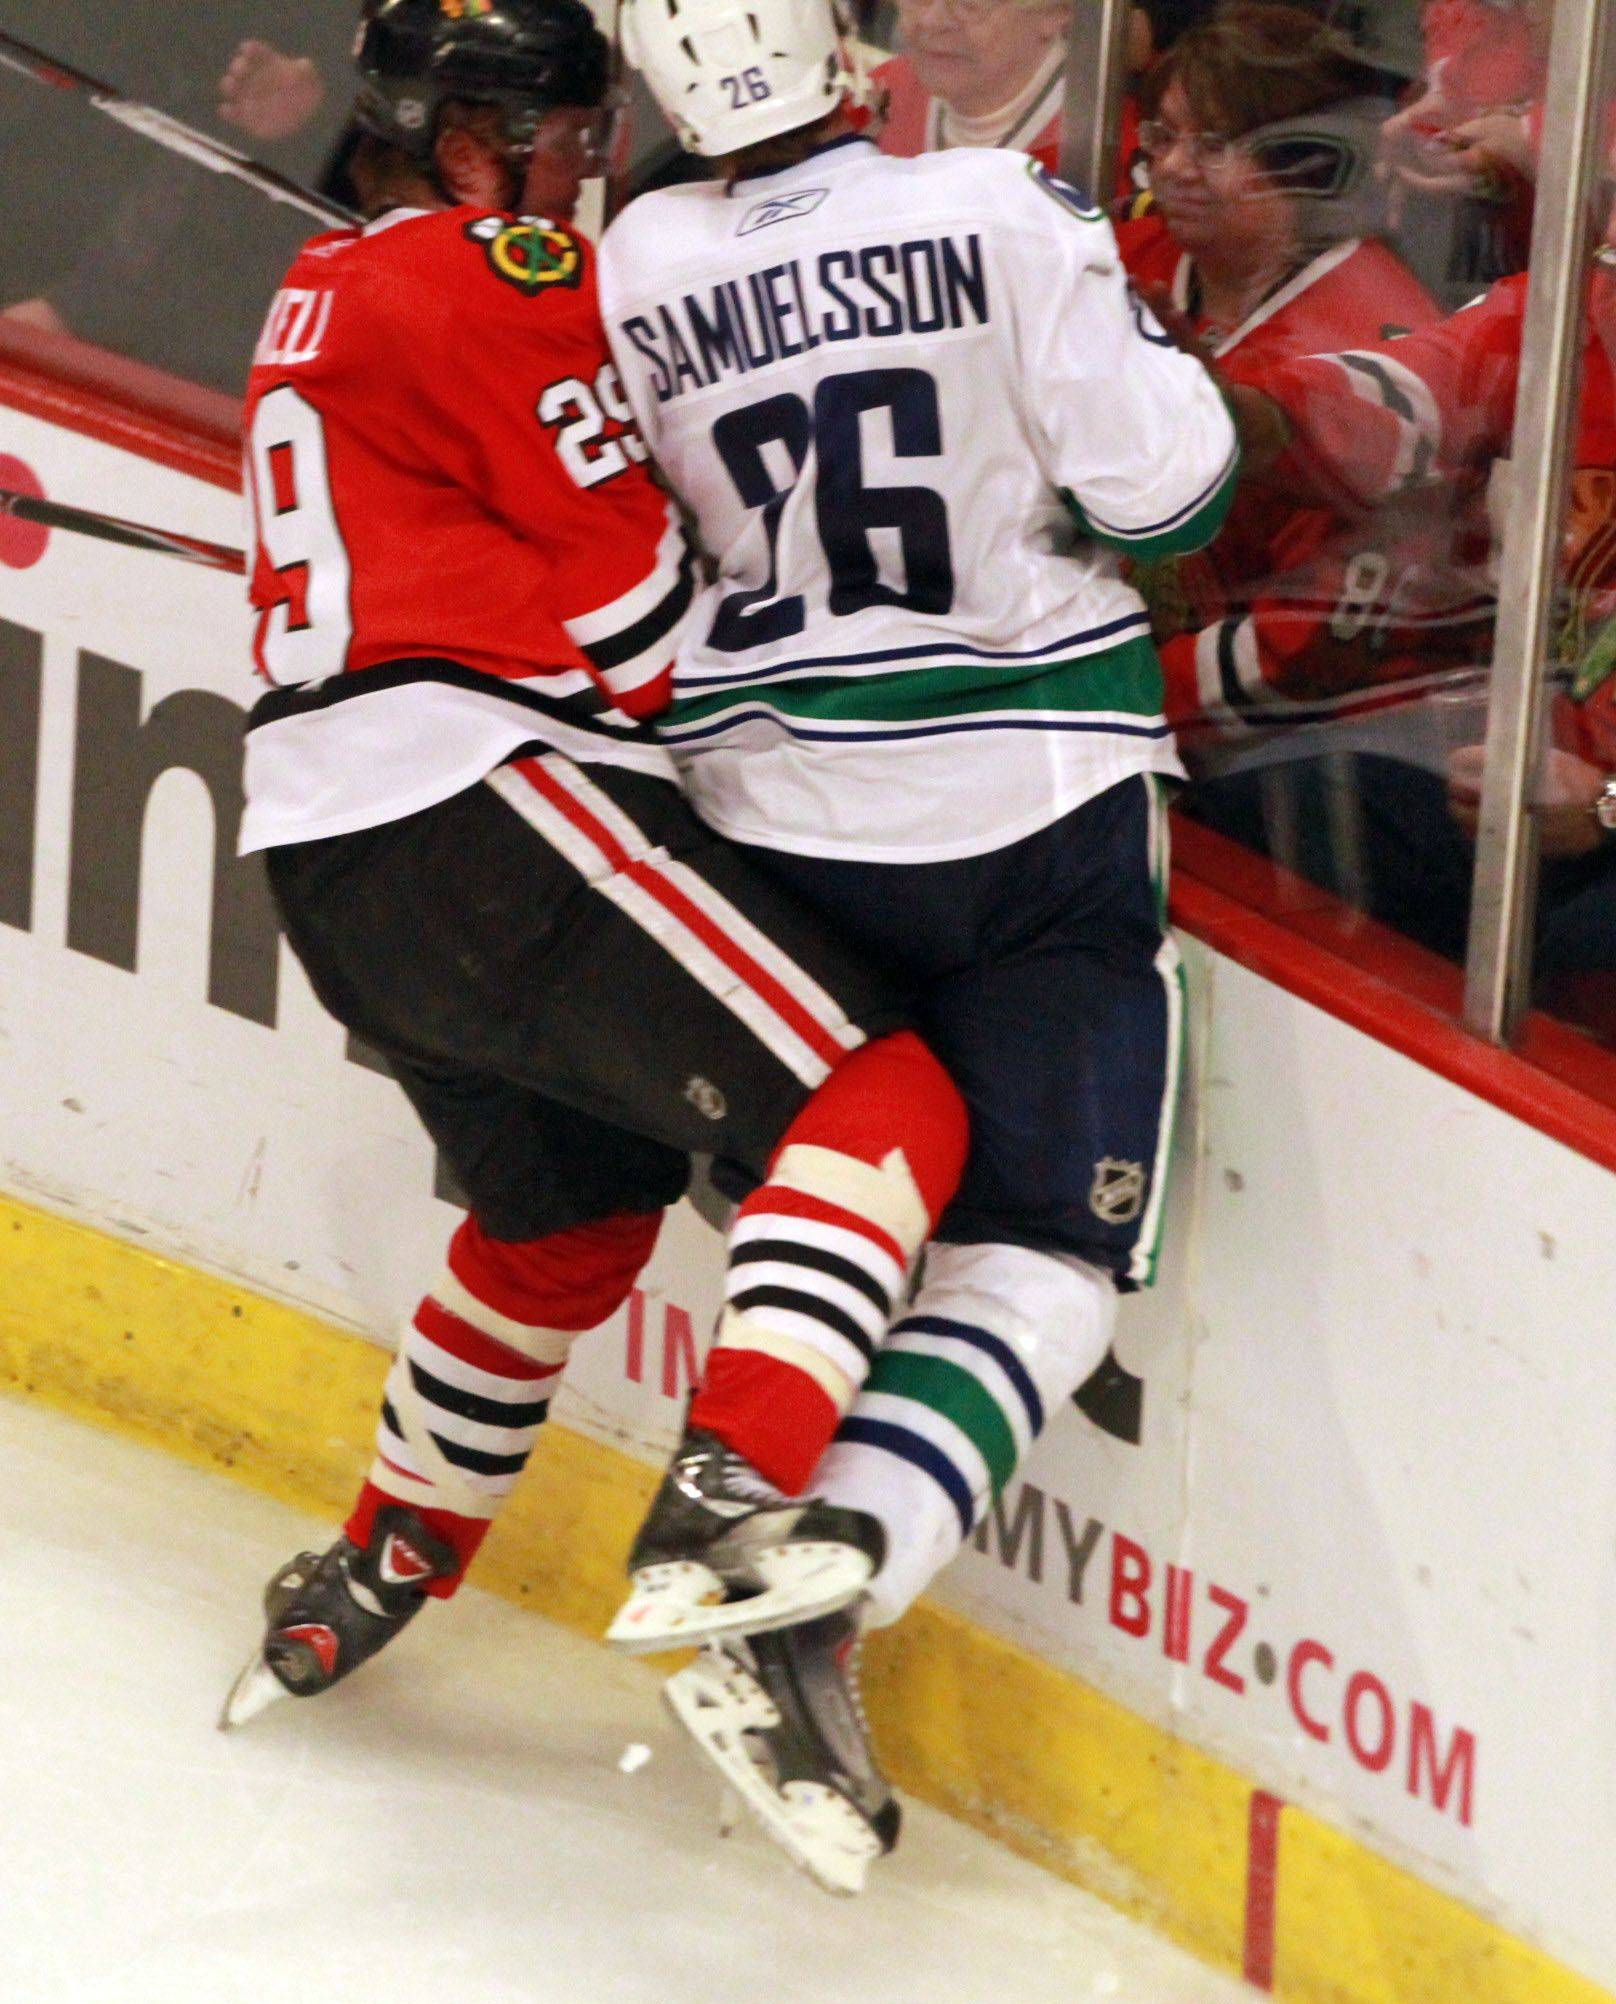 The Hawks' Bryan Bickell gets hit near his right wrist by the Canucks' Mikael Samuelsson in Game 6 Sunday night.